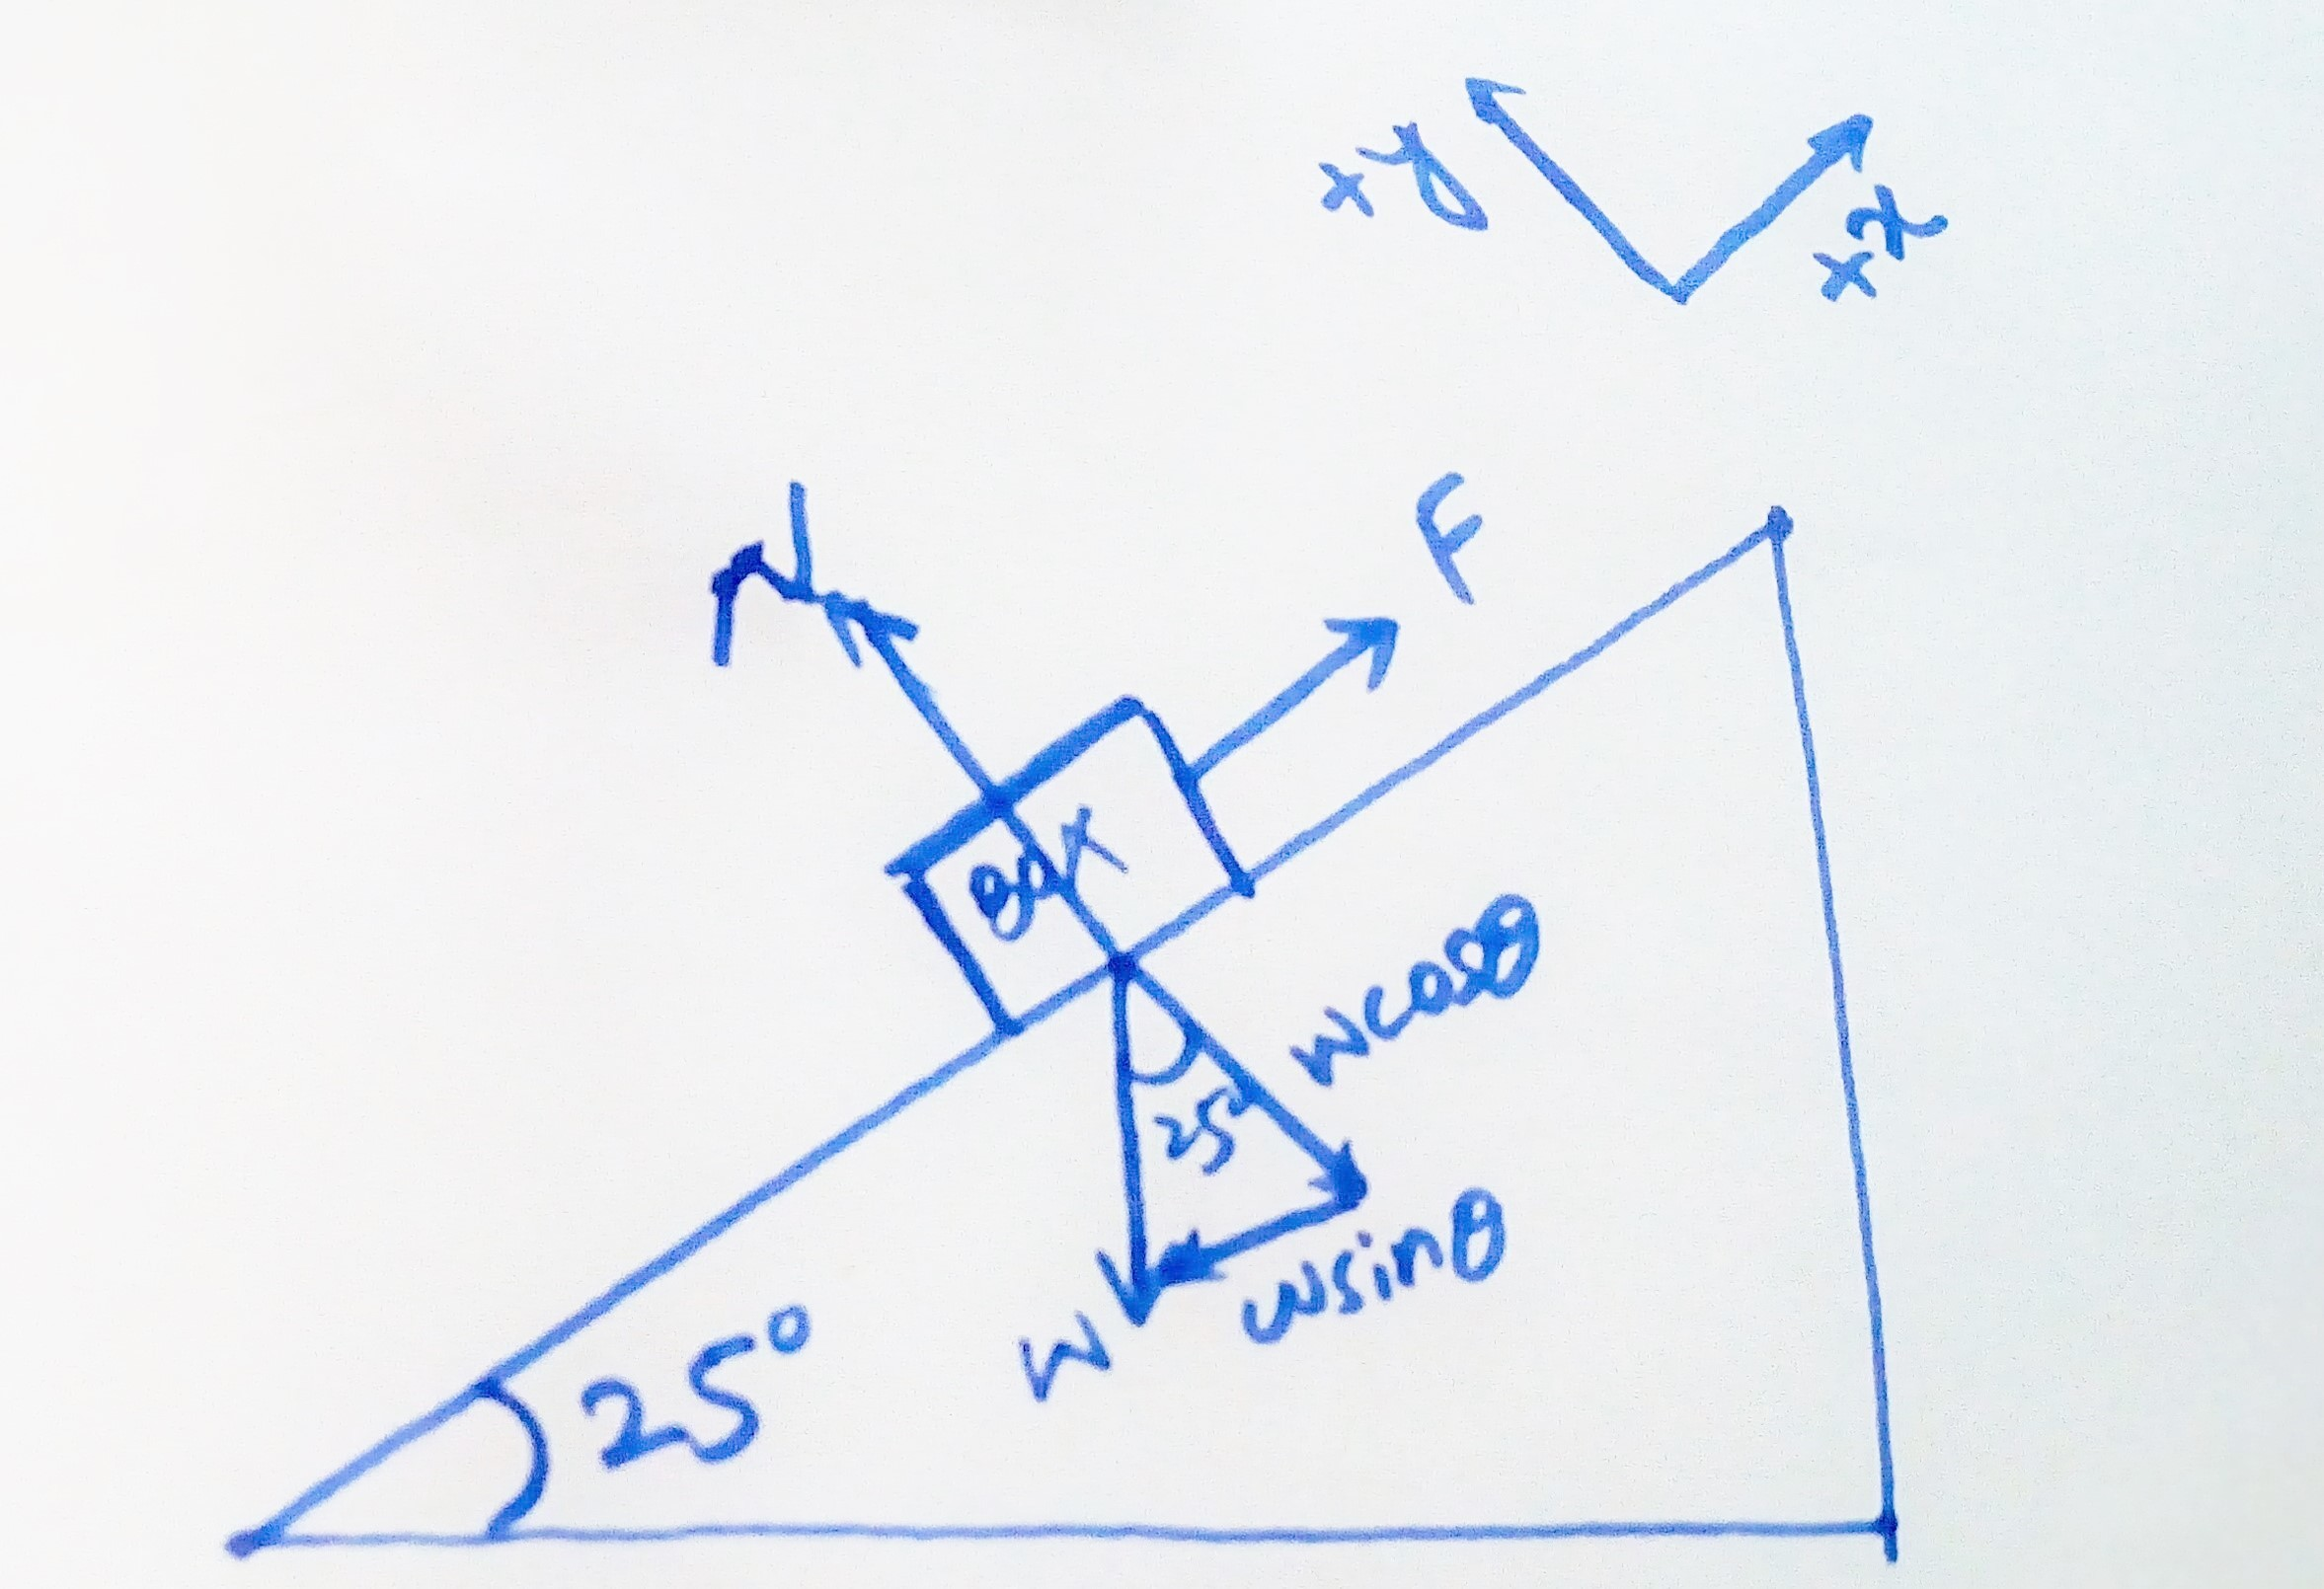 The Free Body Diagram Shows A Box Being Pulled To Left Up 25 Acceleration Due Gravity For This Download